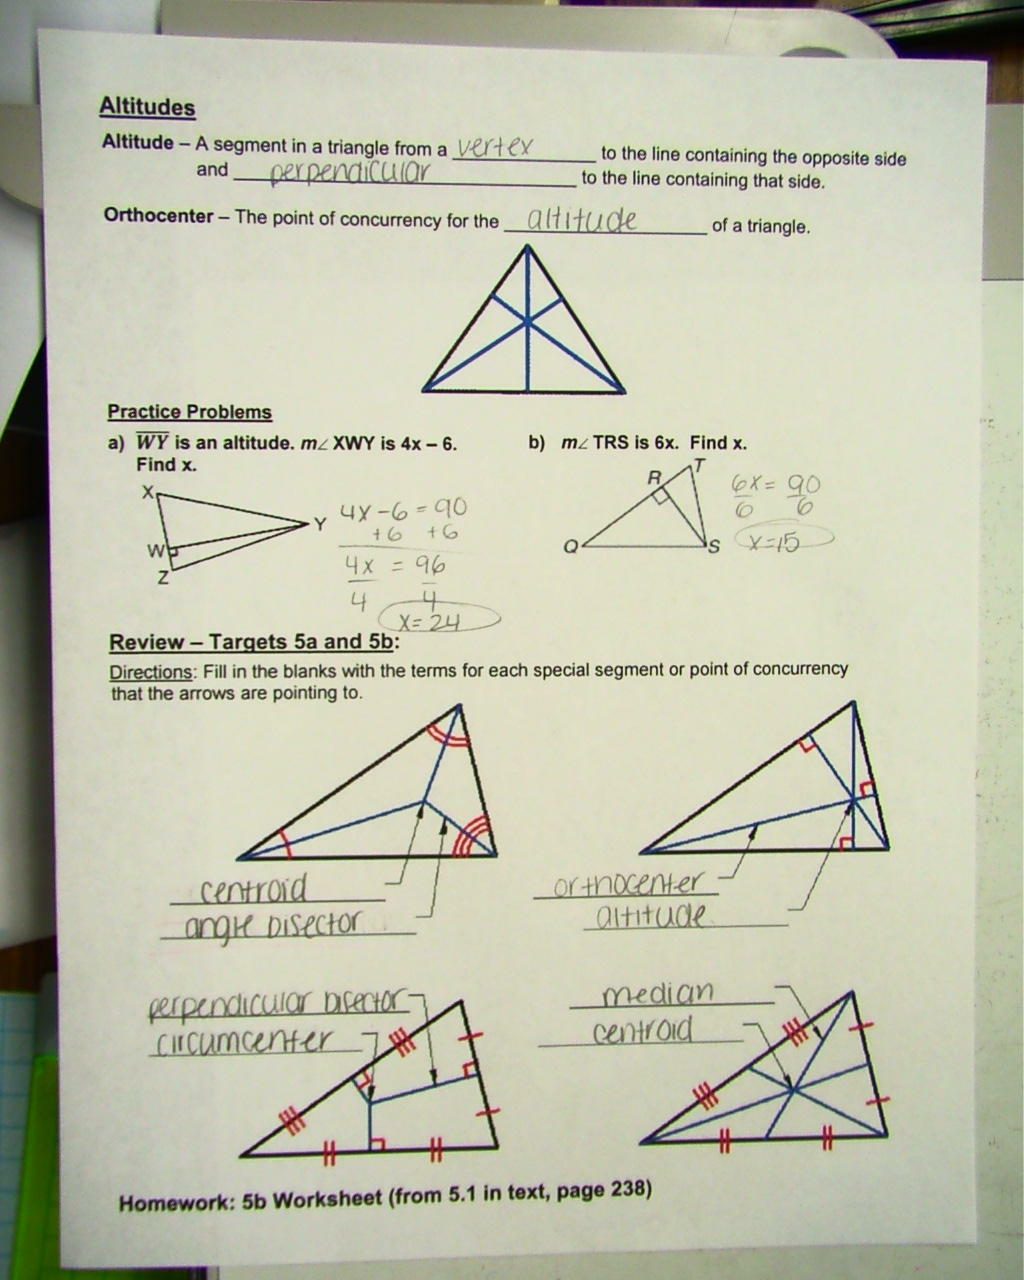 Geometry Points Of Concurrency Worksheet Answers - Ivuyteq Regarding Points Of Concurrency Worksheet Answers